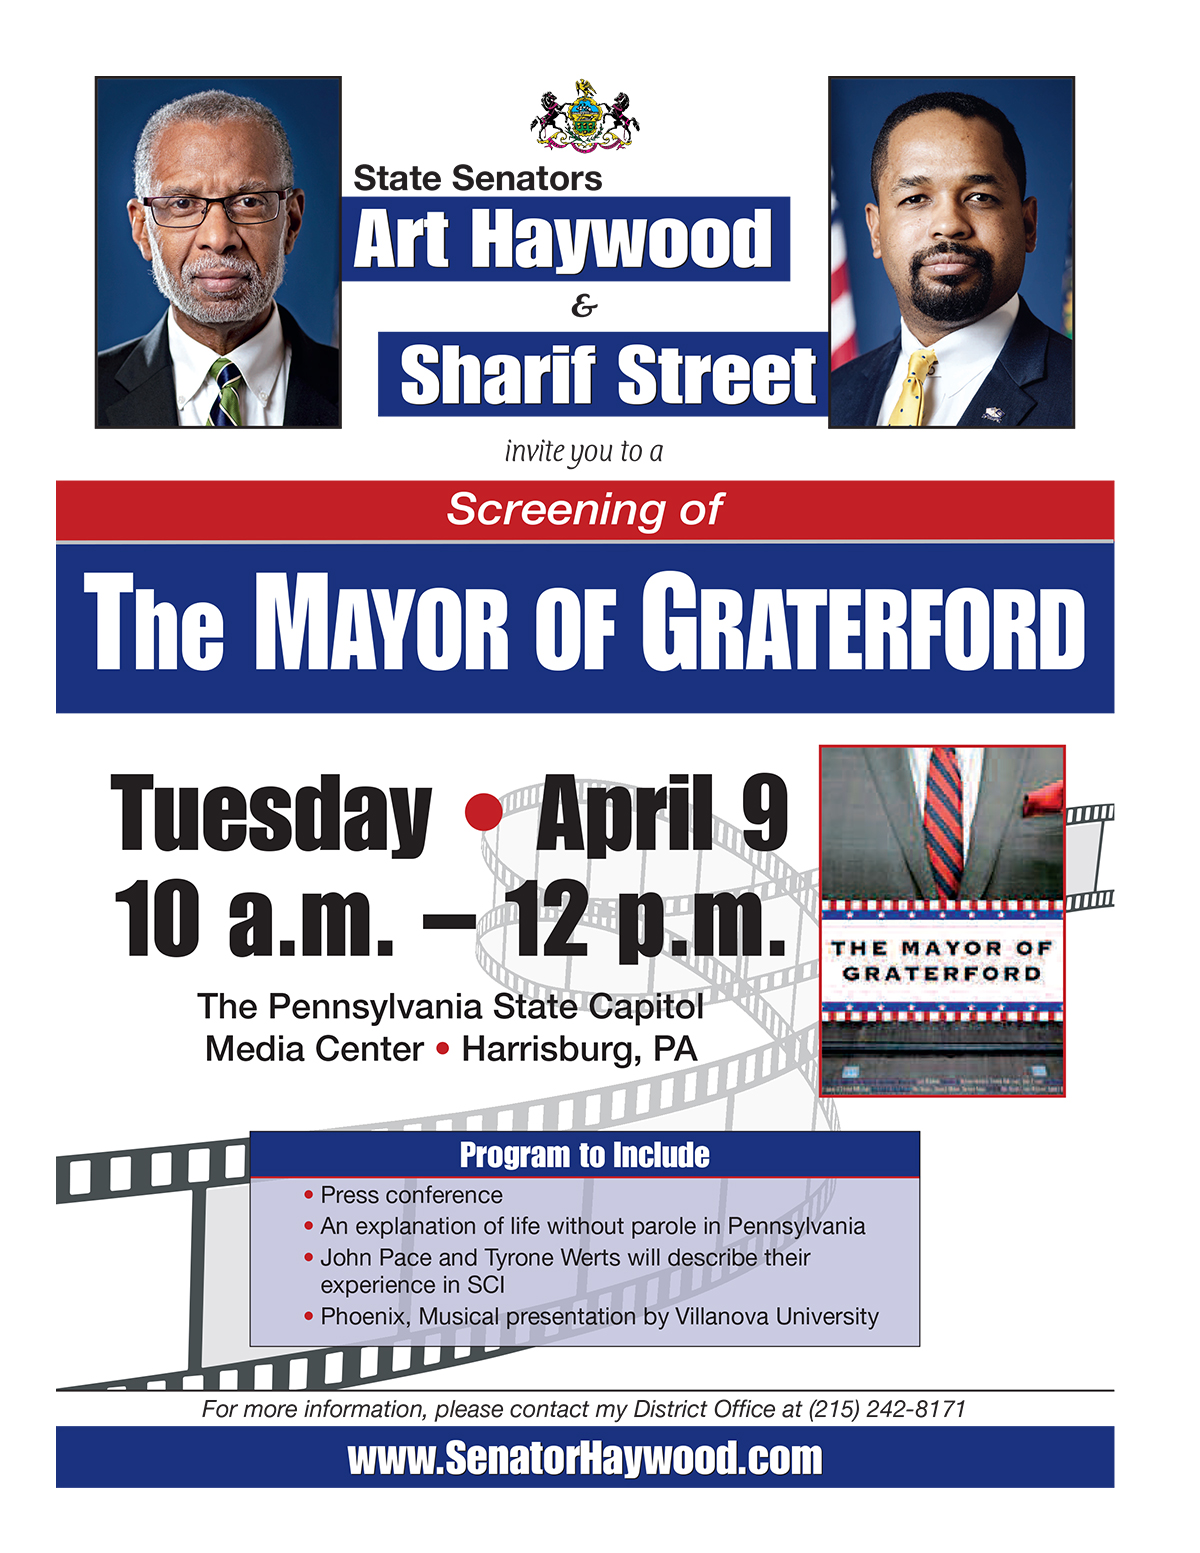 Screening of The Mayor of Graterford - Senator Art Haywood